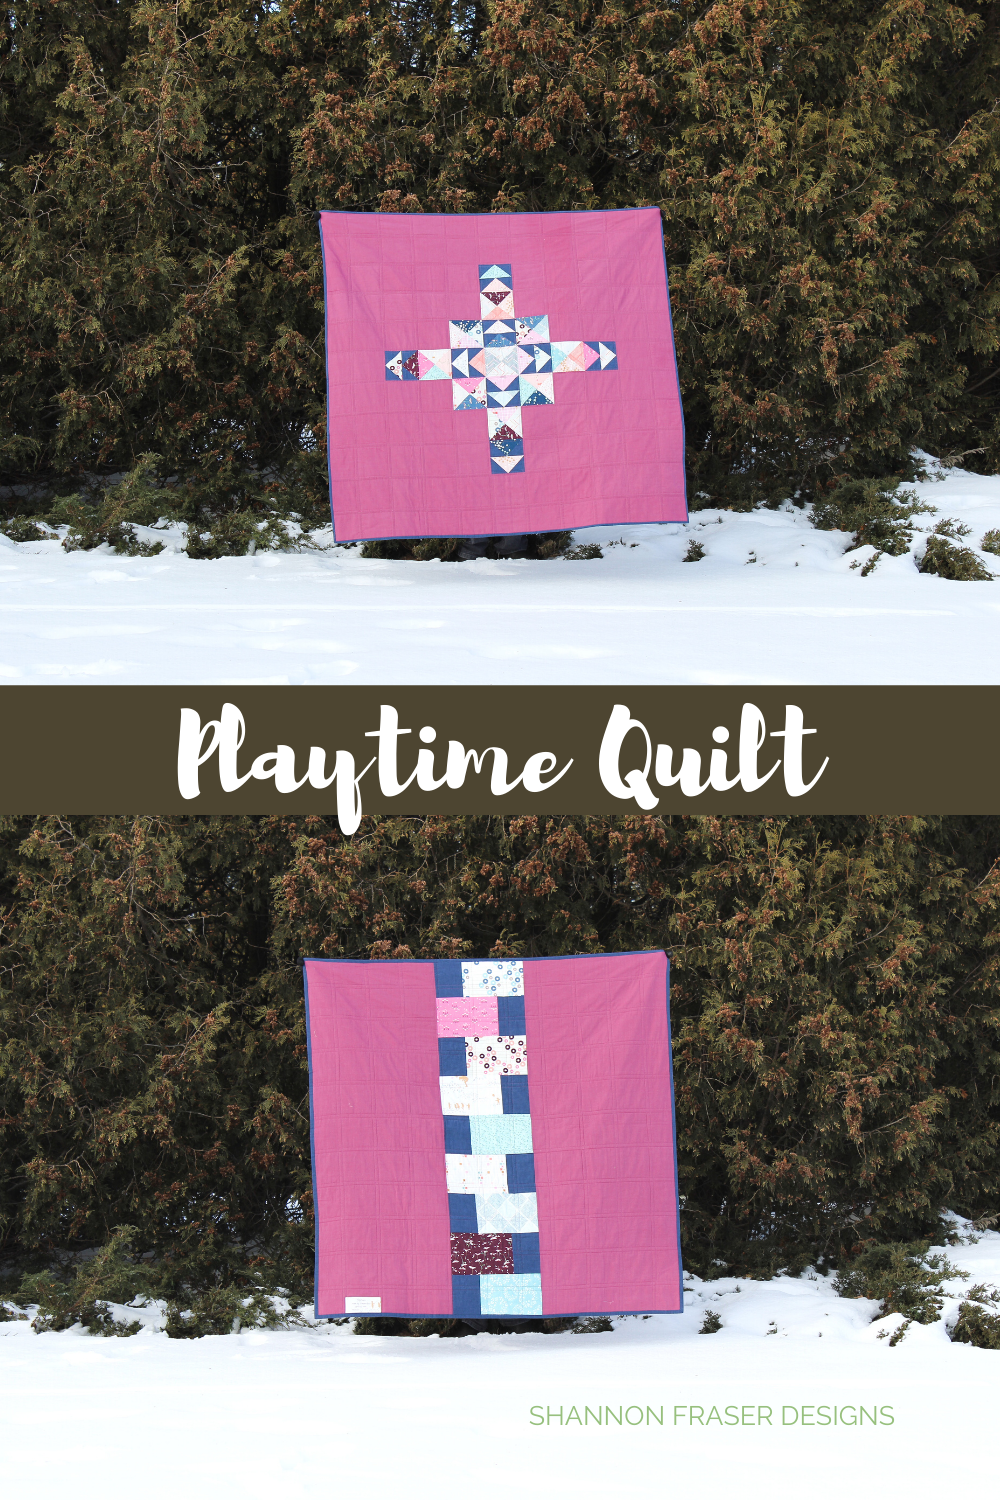 Playtime quilt in the winter wild - front and back views of the quilt | Playground Showcase | Shannon Fraser Designs #quiltsinthewild